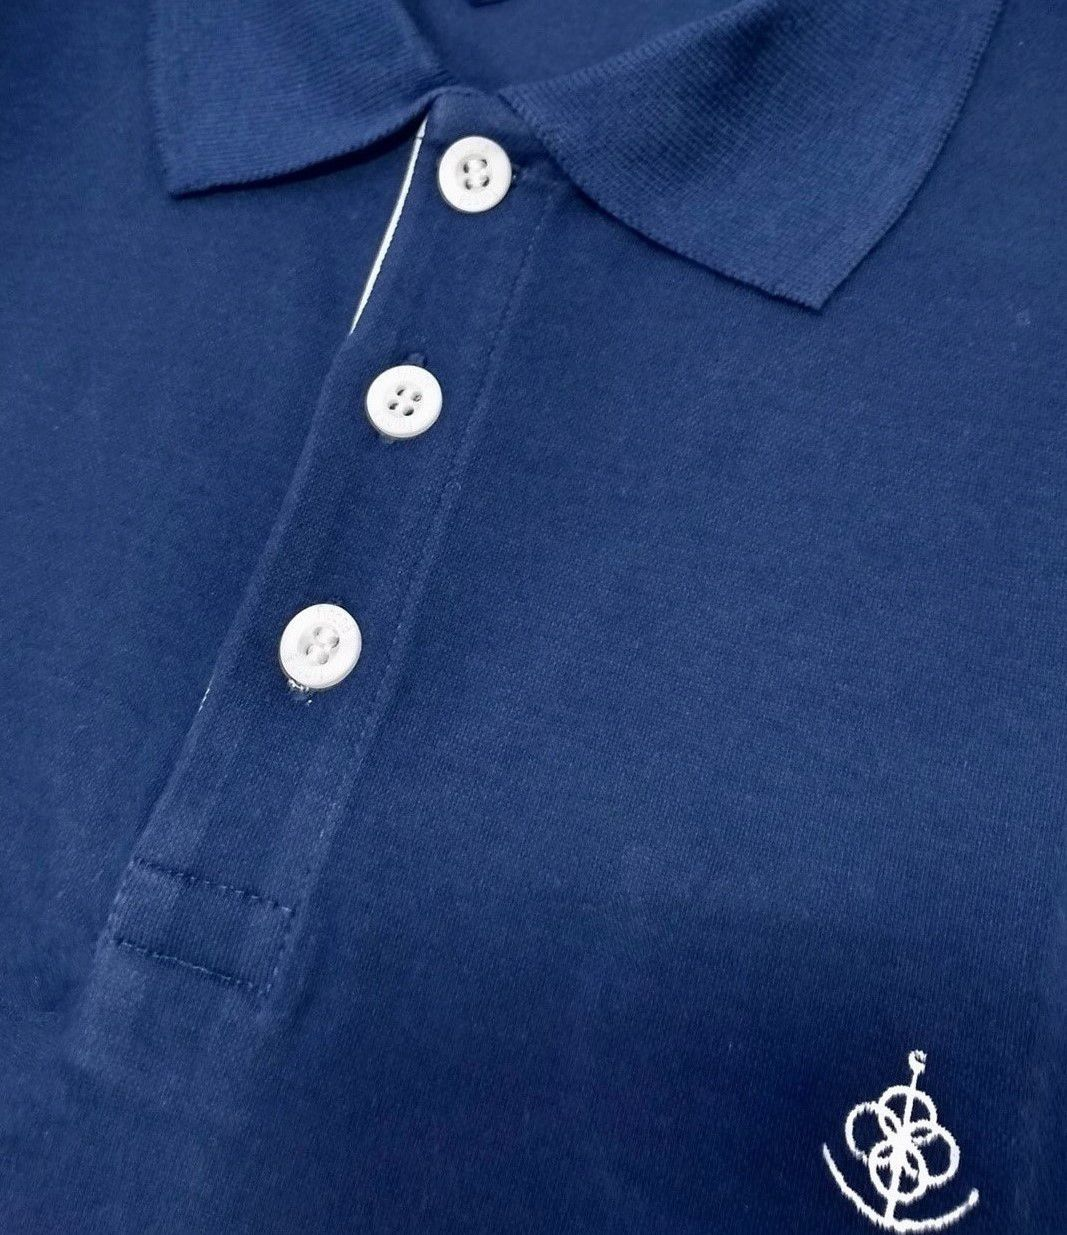 8d382c1b6fcce Camisa Polo Masculina Azul Detalhe Poá. Image description · Image  description · Image description · Image description